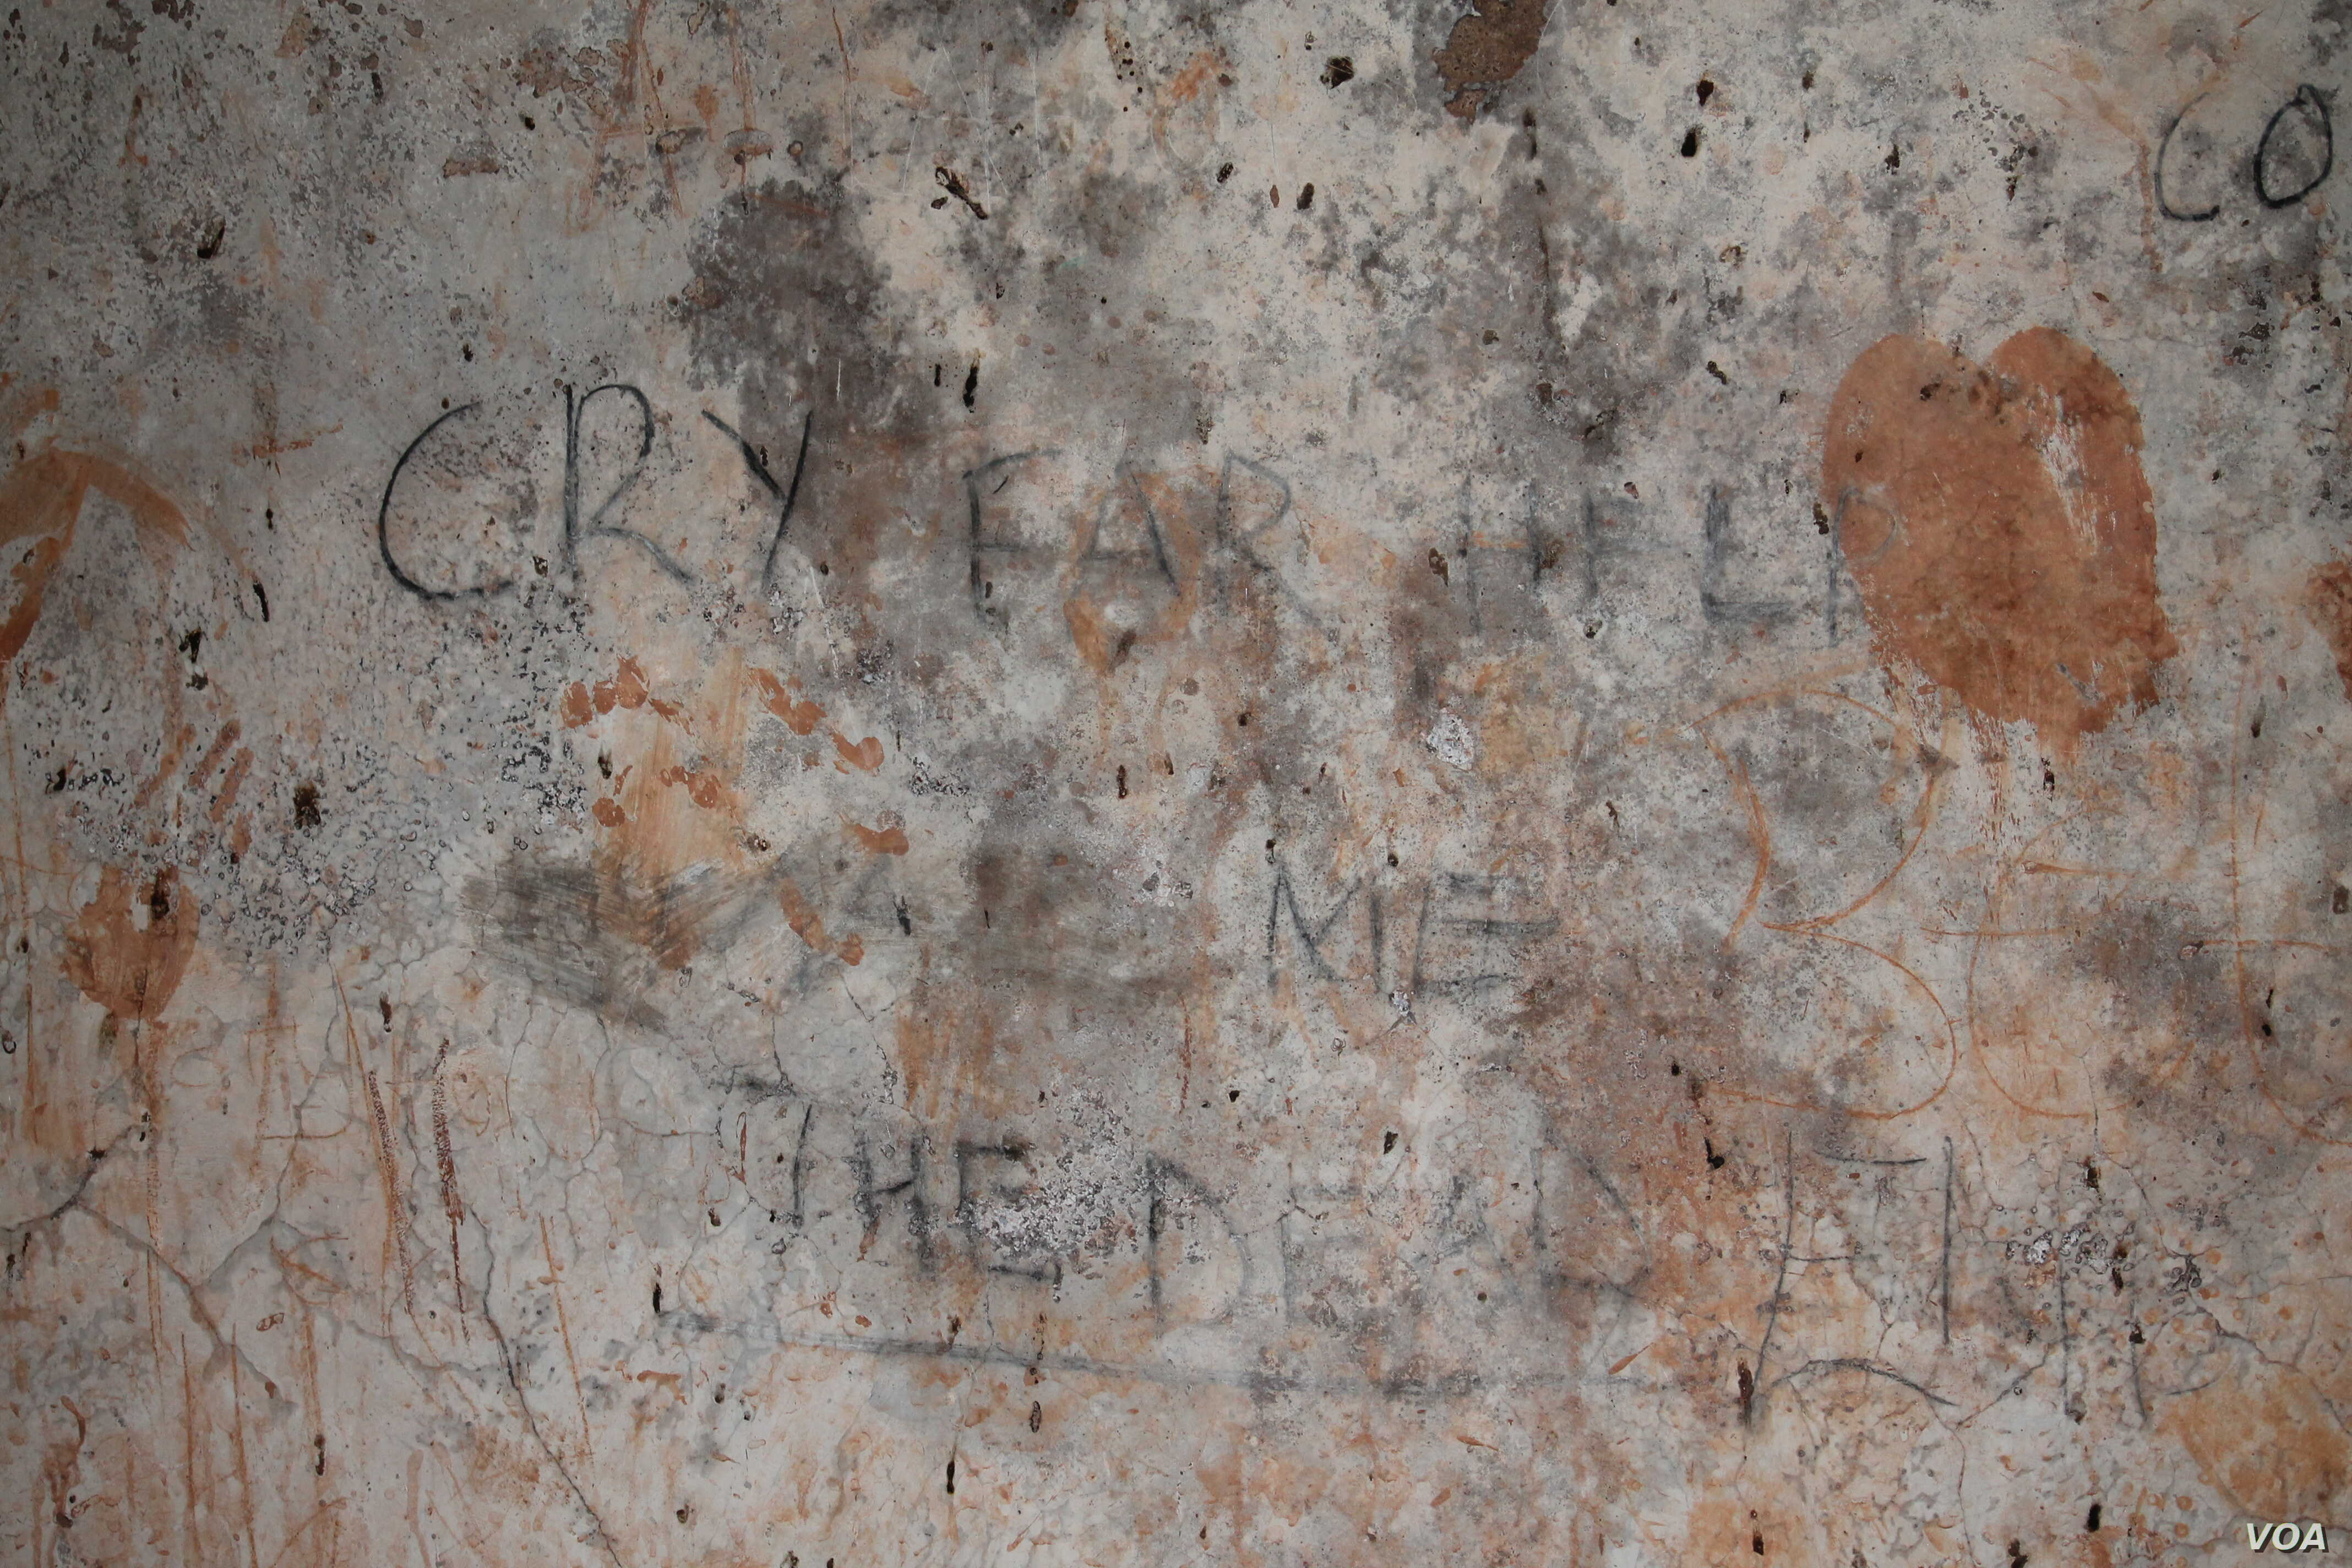 Graffiti on the wall of a dungeon in Buganda Lubiri Palace in Kampala, once used for torturing prisoners.  (H. Athumani for VOA)